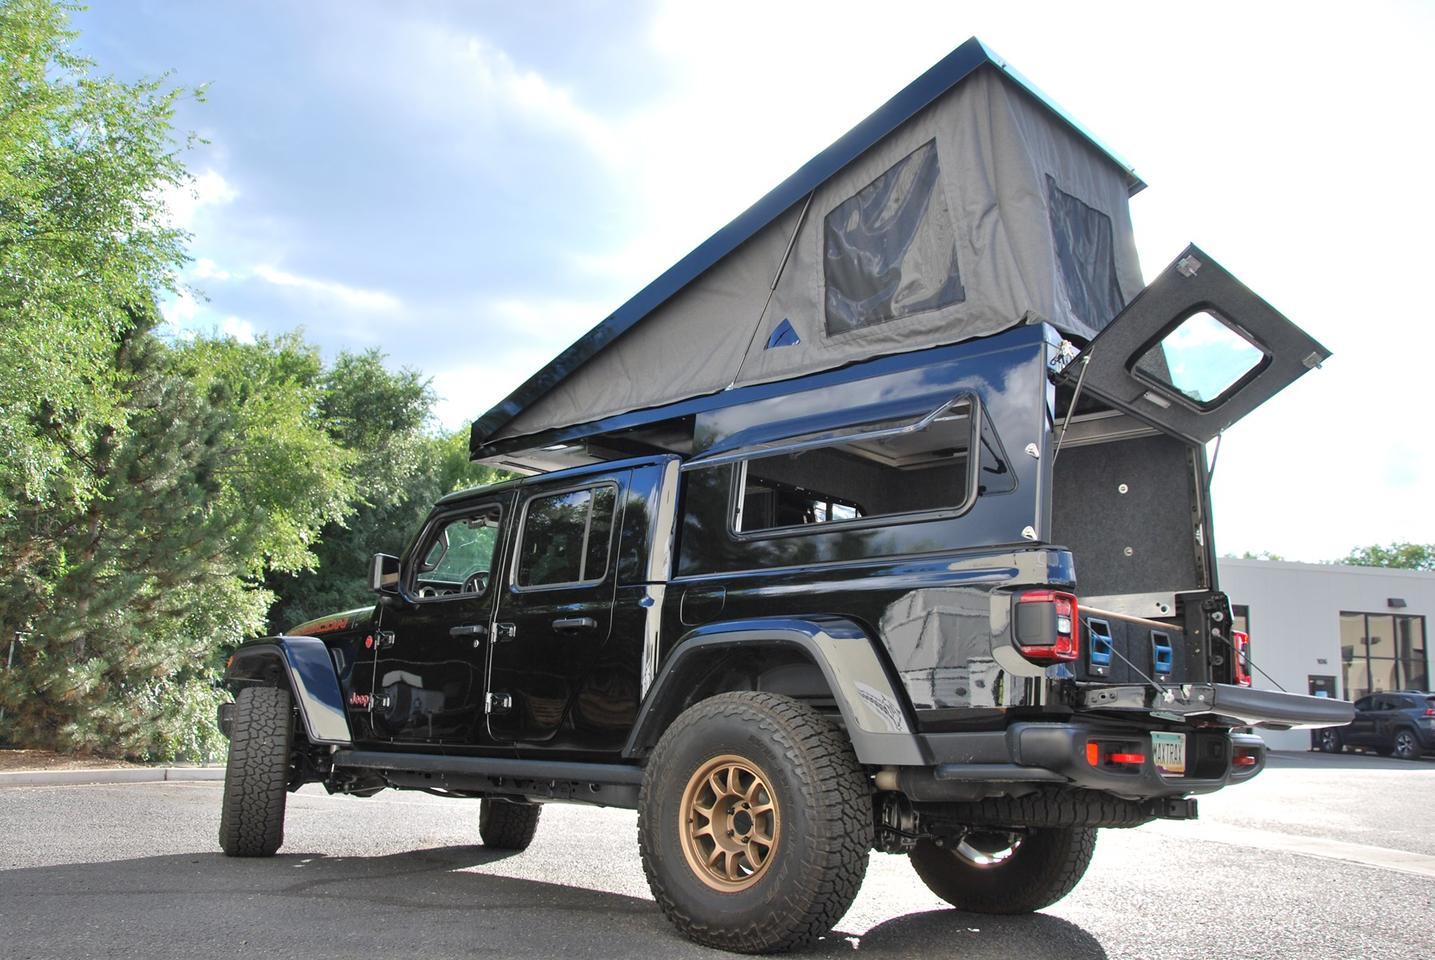 AT Overland now offers the Summit topper for the Jeep Gladiator